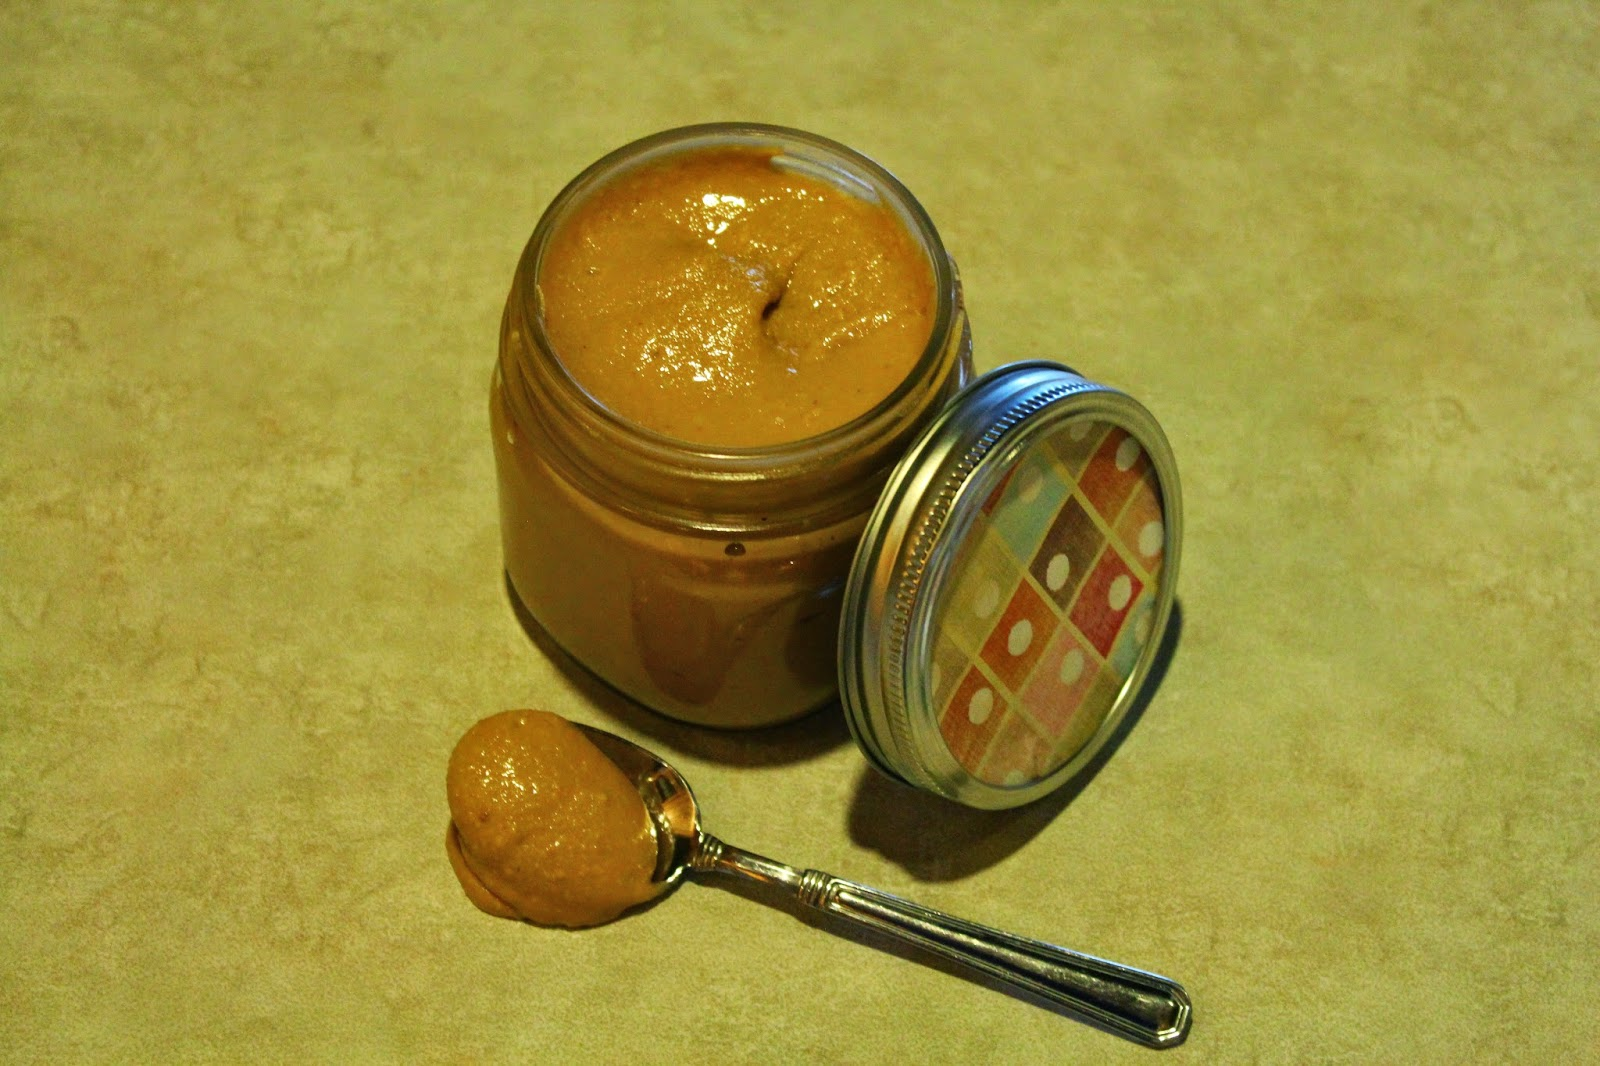 IMG 4440 - Homemade Peanut Butter